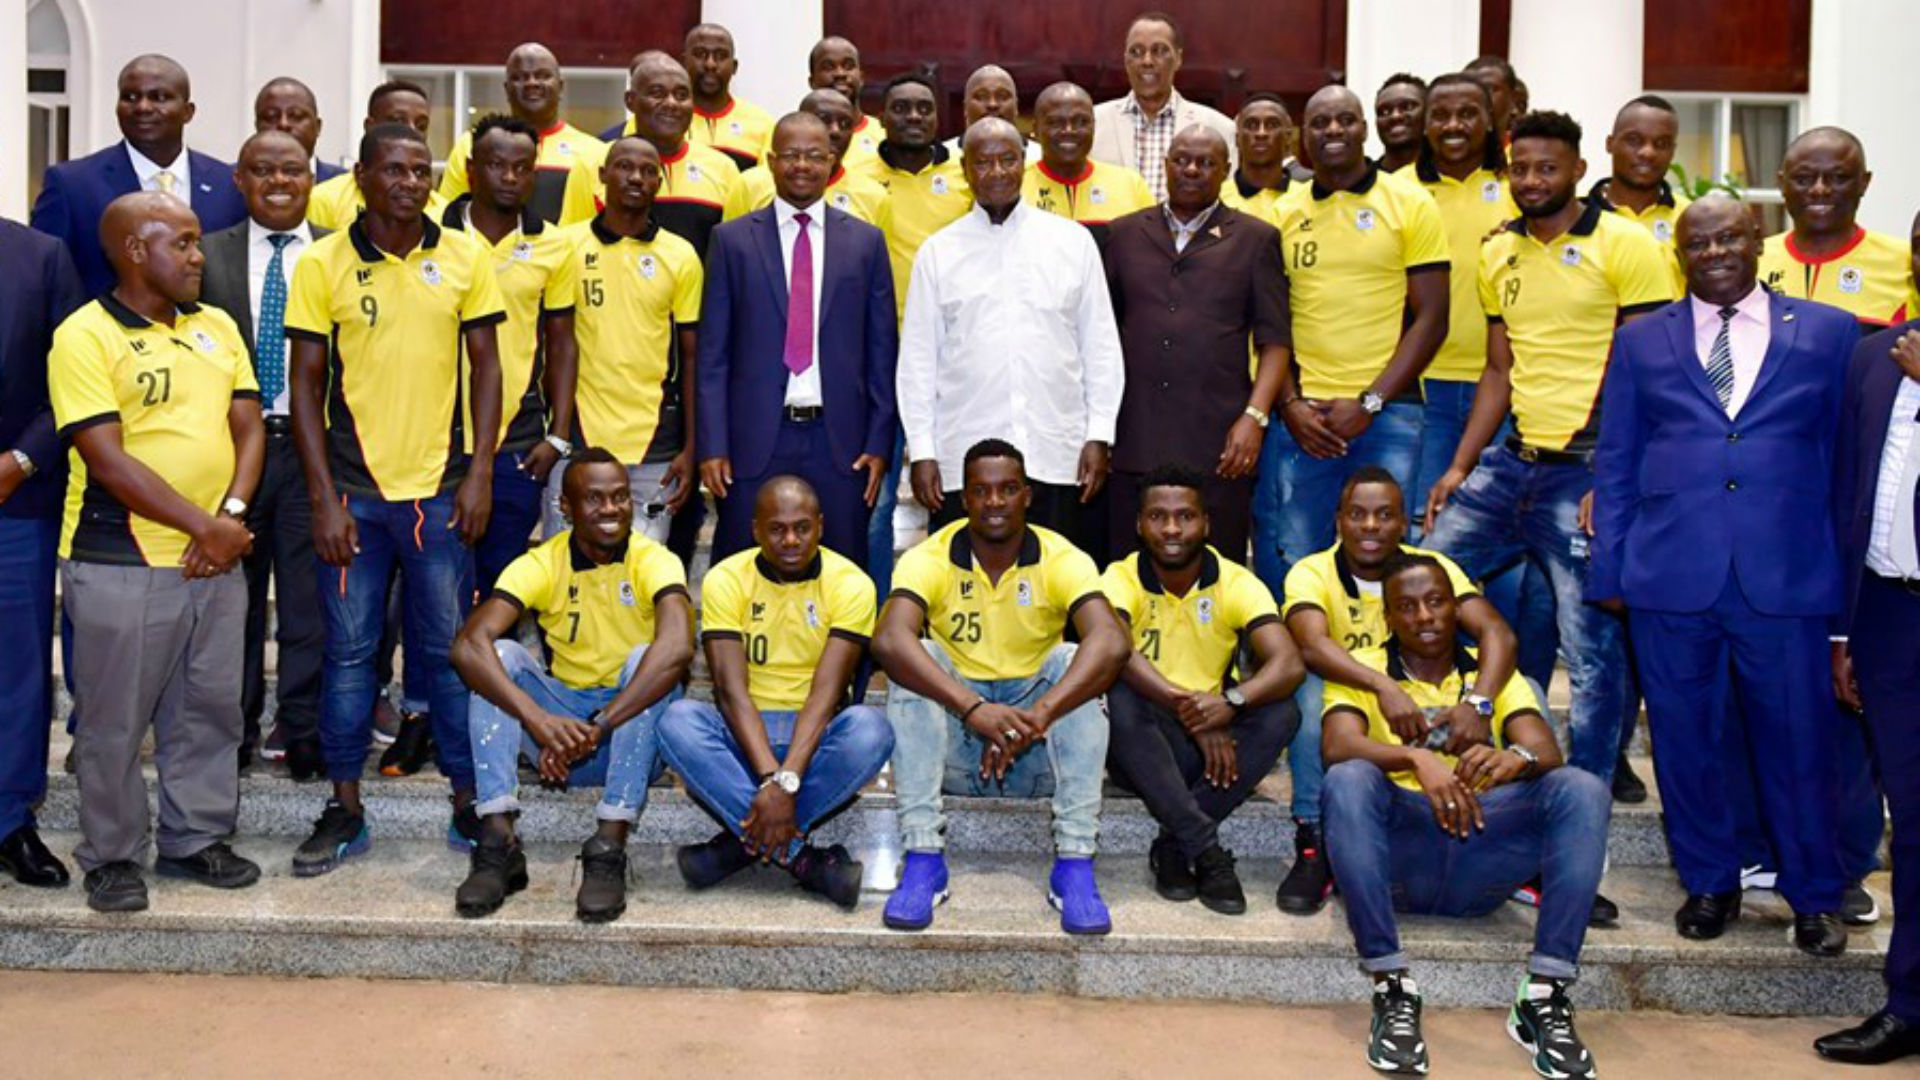 Please, President Museveni, we want our promised Afcon money - Uganda's Miya